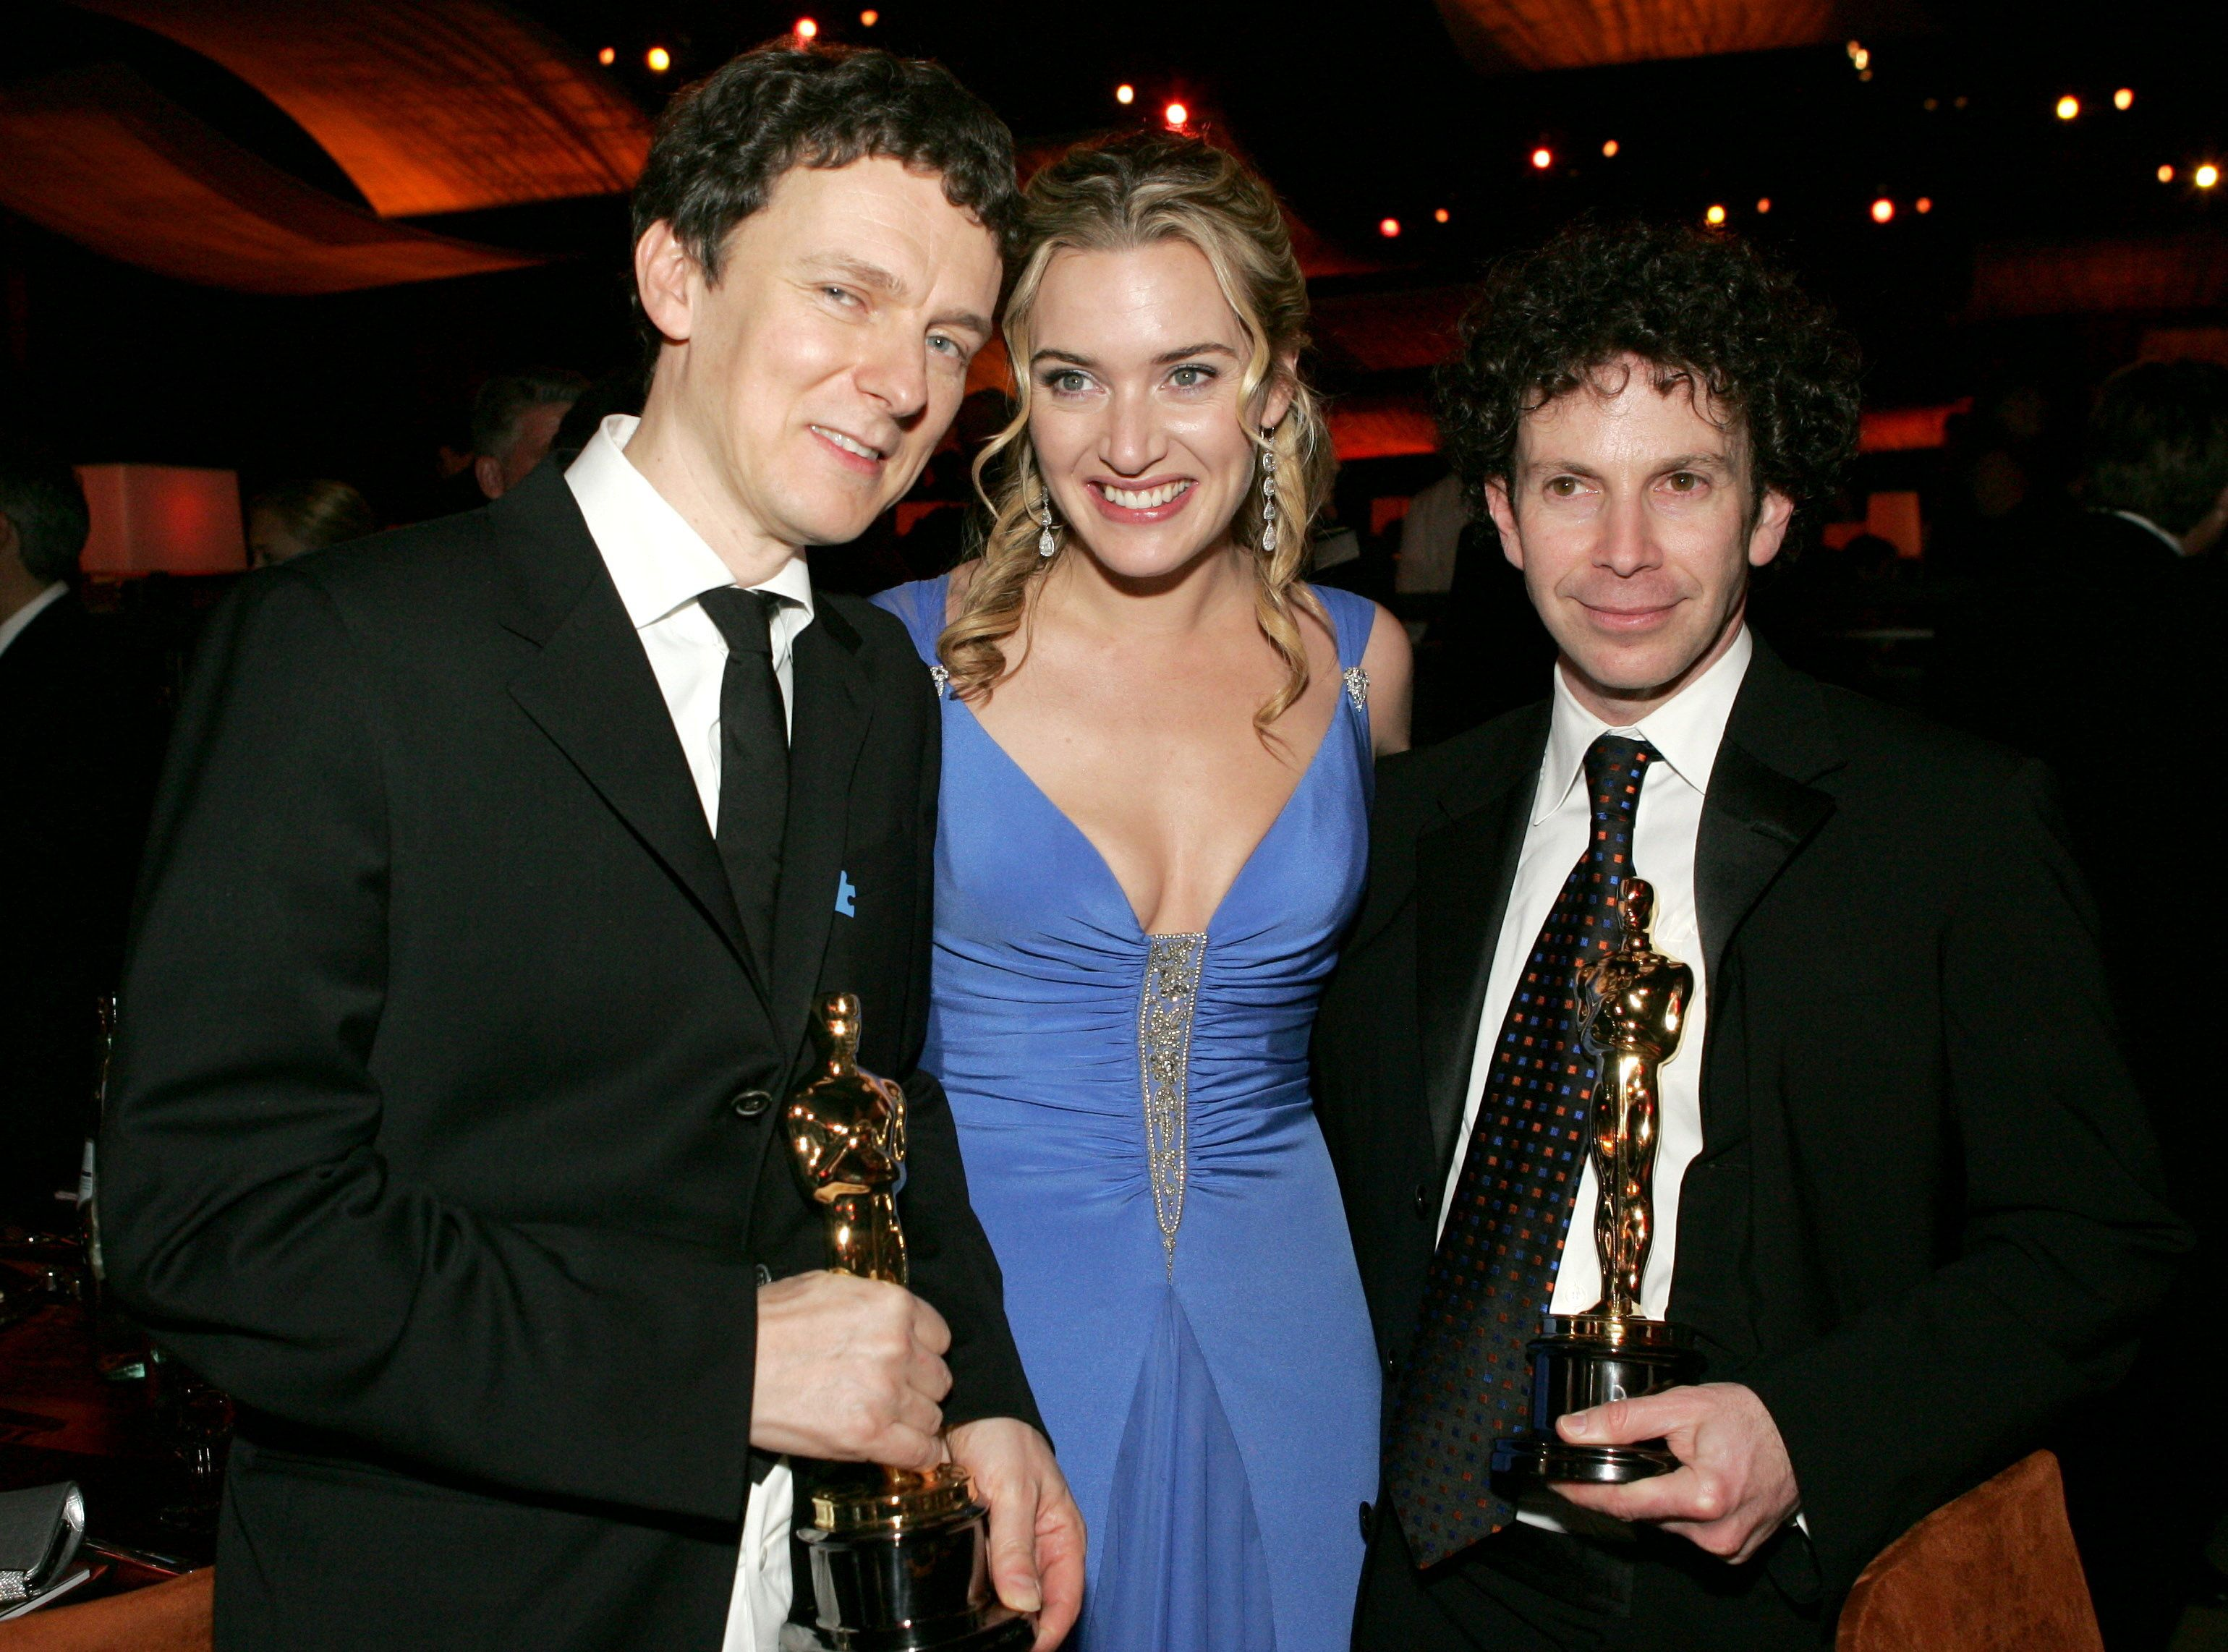 Michel Gondry, Kate Winslet and Charlie Kaufman after the 2005 Oscars, where Gondry and Kaufman won Best Original Screenplay